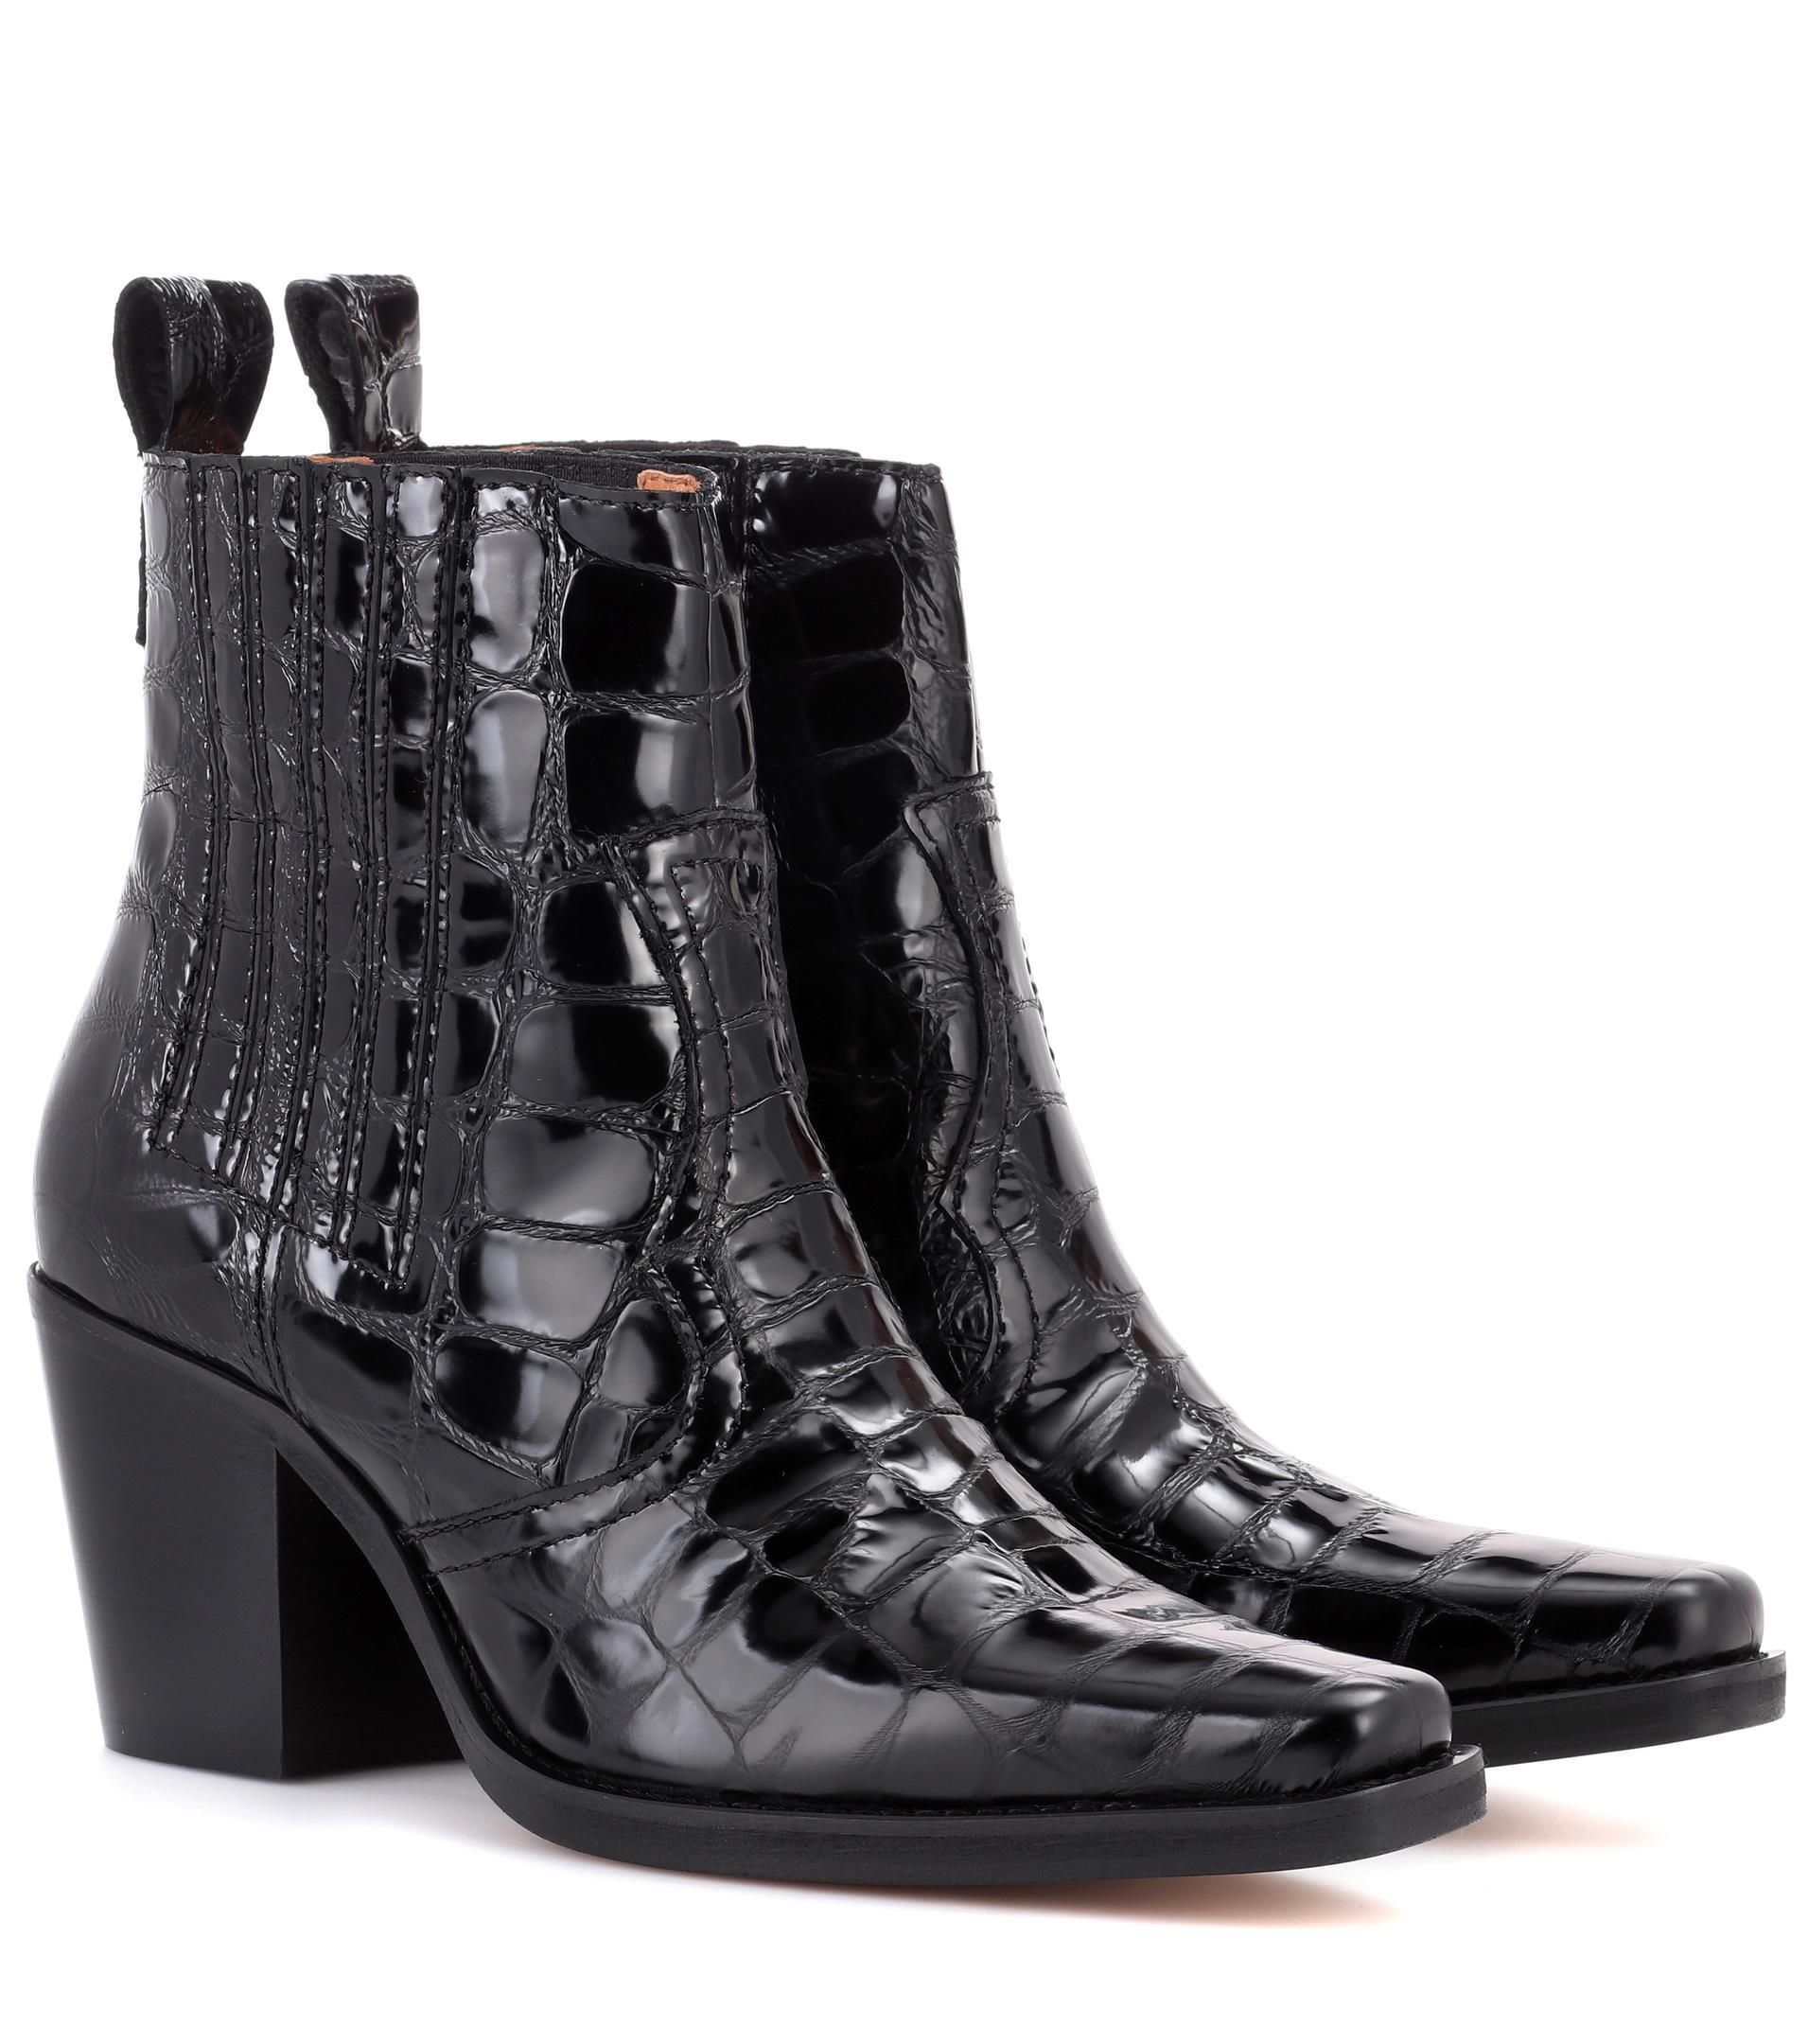 d40bc75d995 Women s Black Callie Embossed-leather Ankle Boots